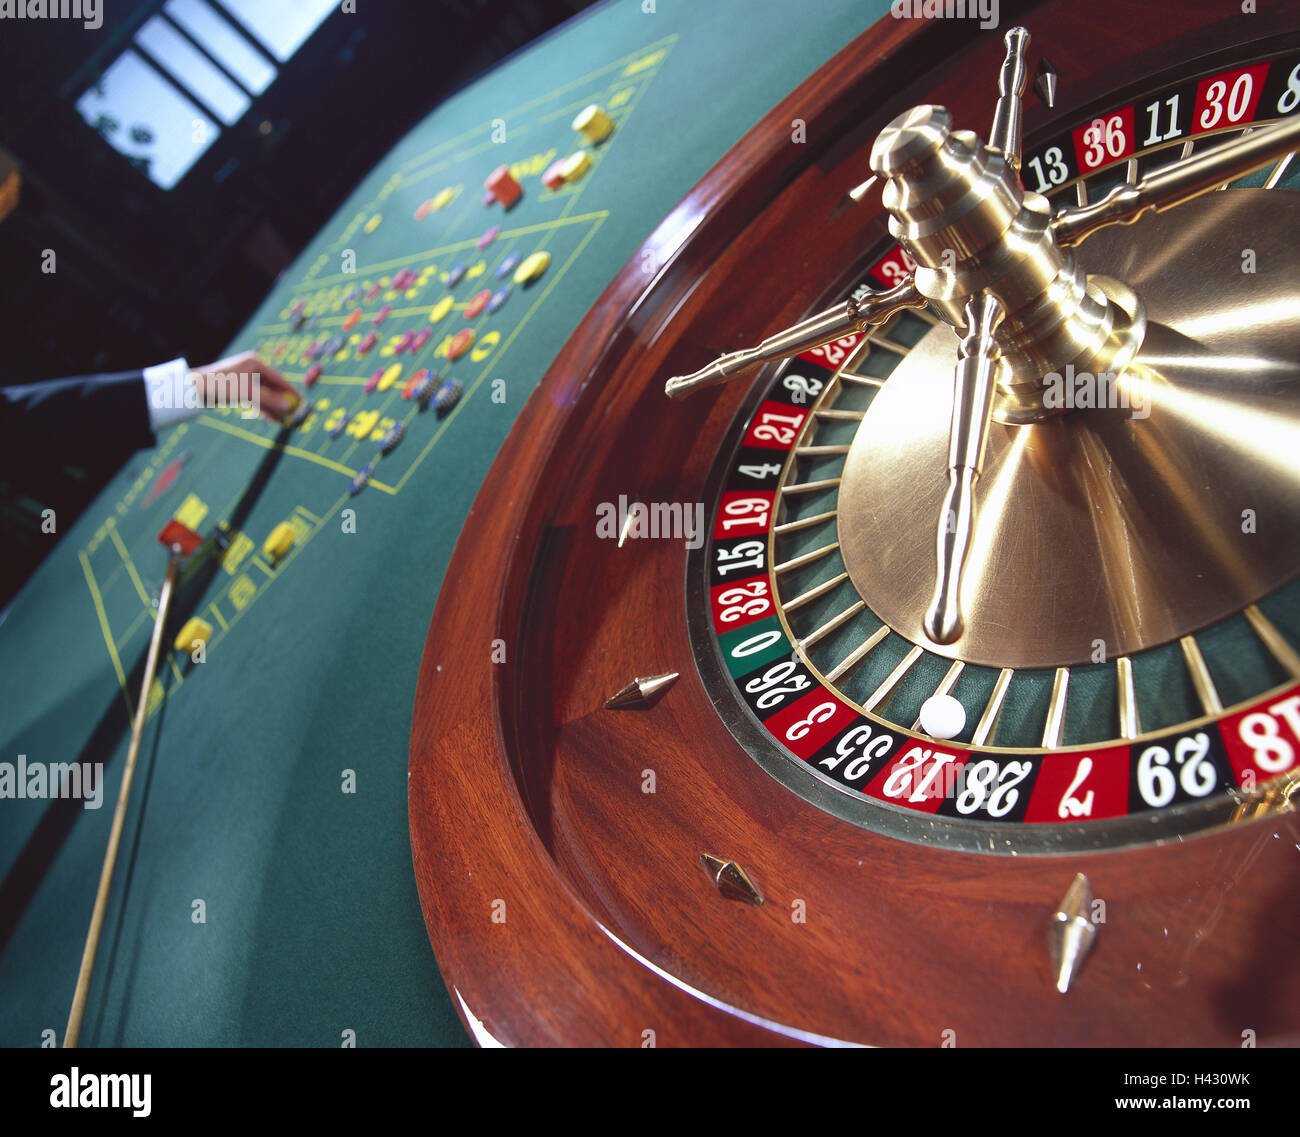 Casino, roulette, man, detail, hand, tokens, place, casino, game chance, game, risk, chance, roulette game, roulette, - Stock Image